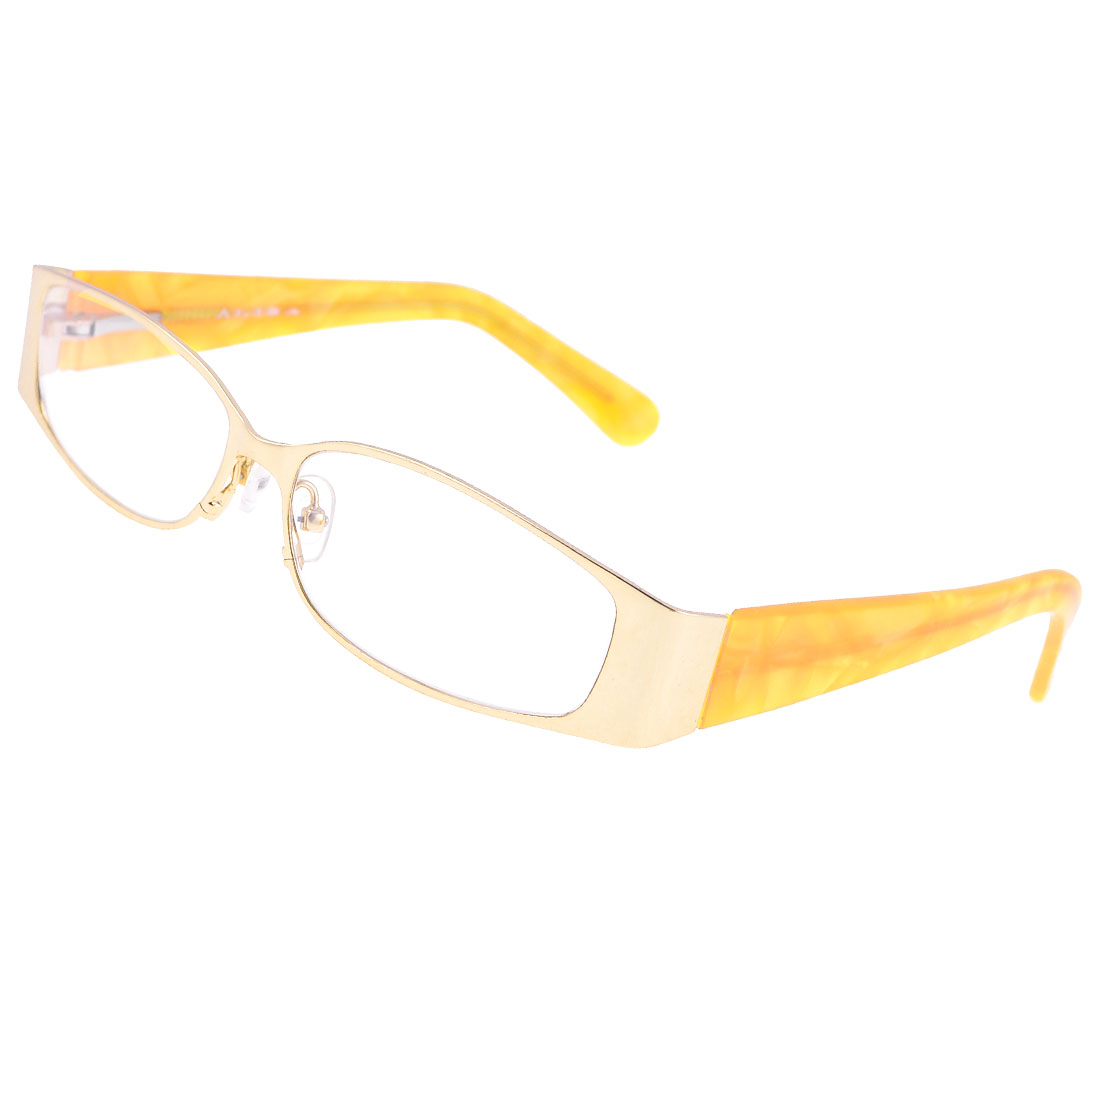 Metal Full Rim Rubber Nose Pads Plano Spectacles Yellow for Man